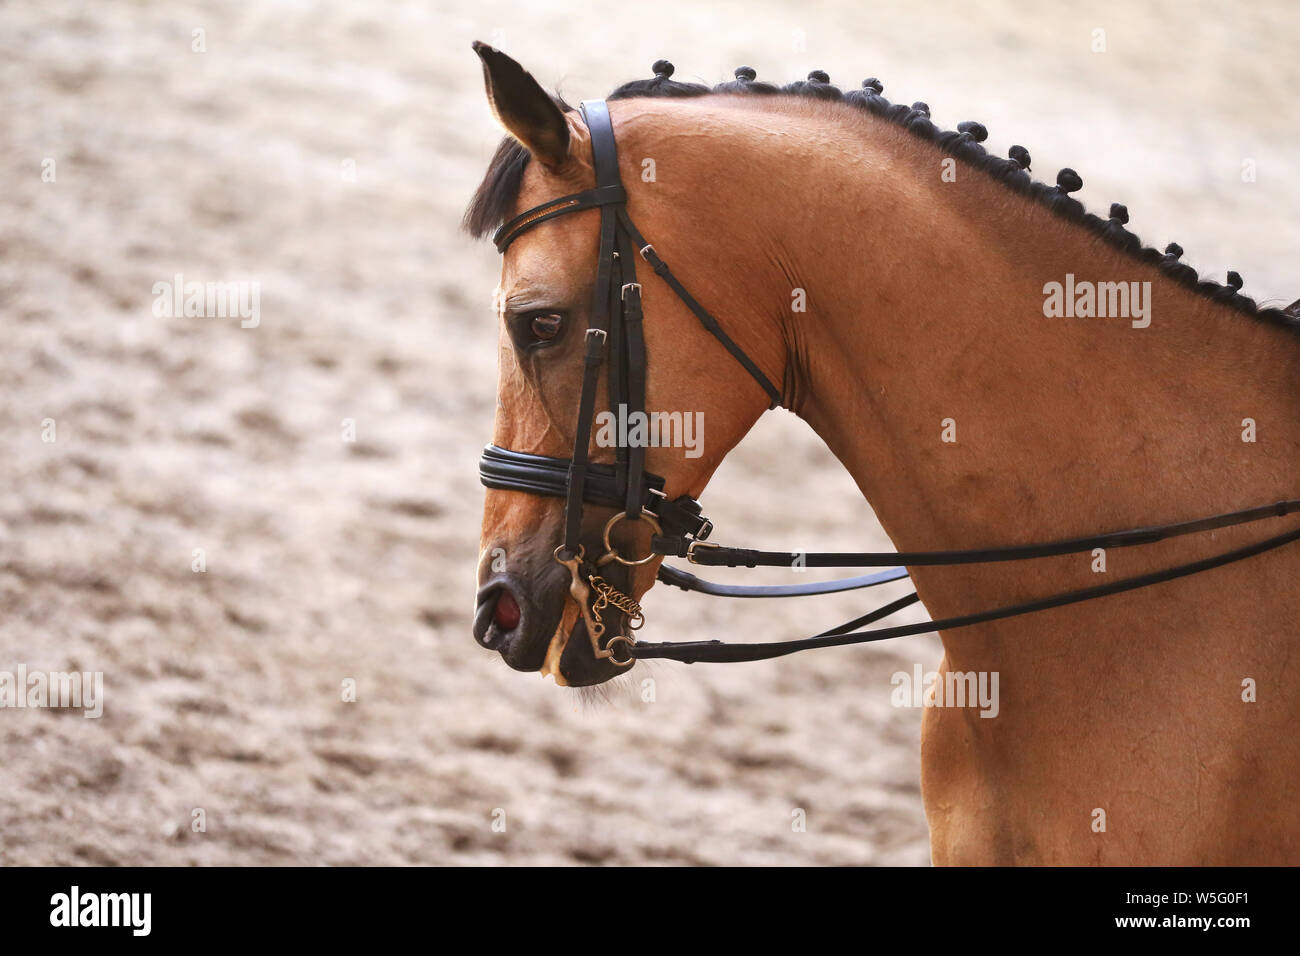 Portrait head shot close up of a beautiful purebred dressage horse during event indoors Stock Photo